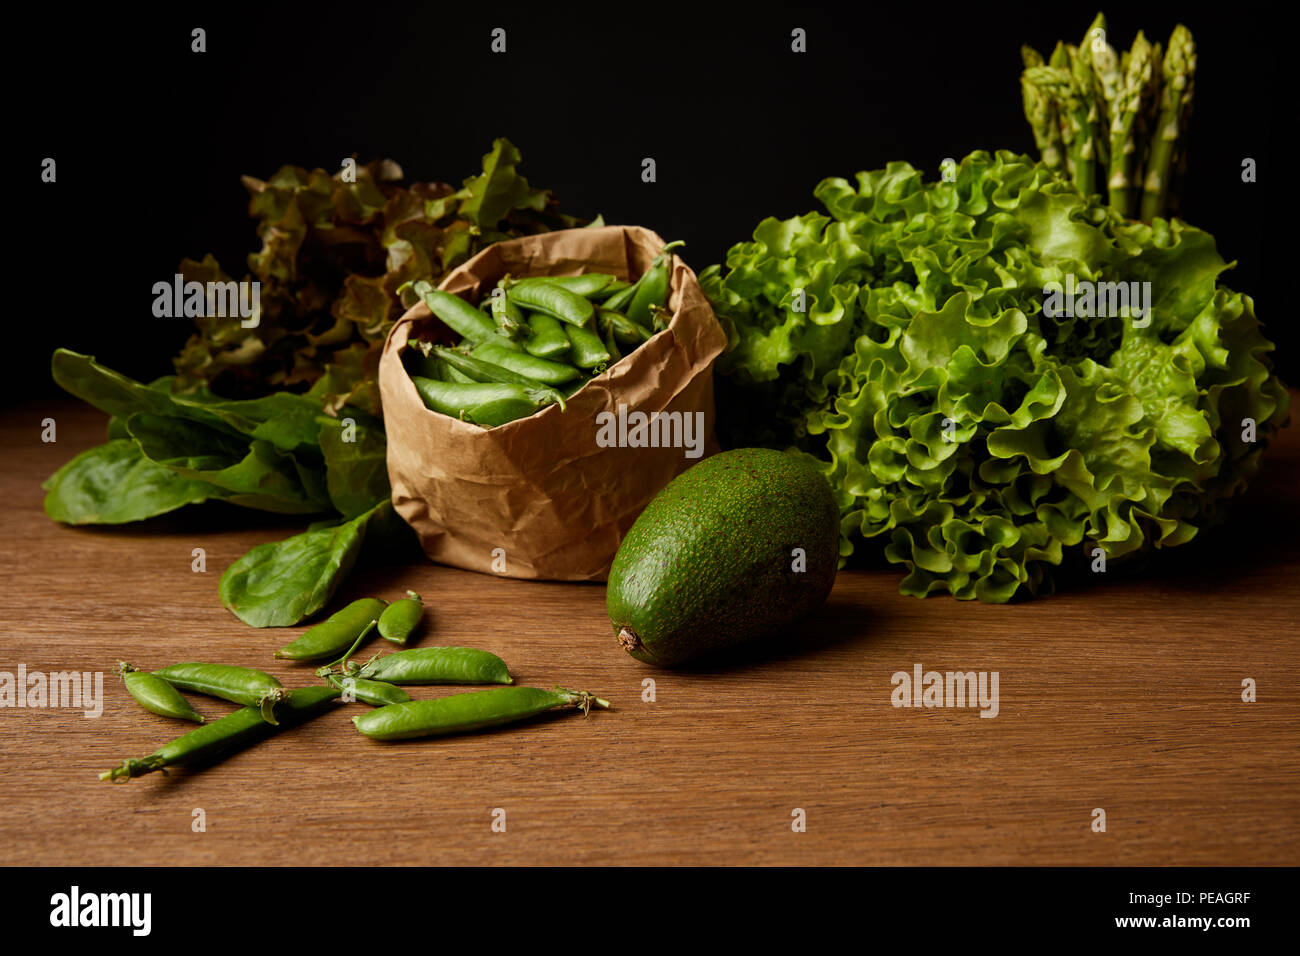 close-up shot of fresh green vegetables on wooden surface - Stock Image